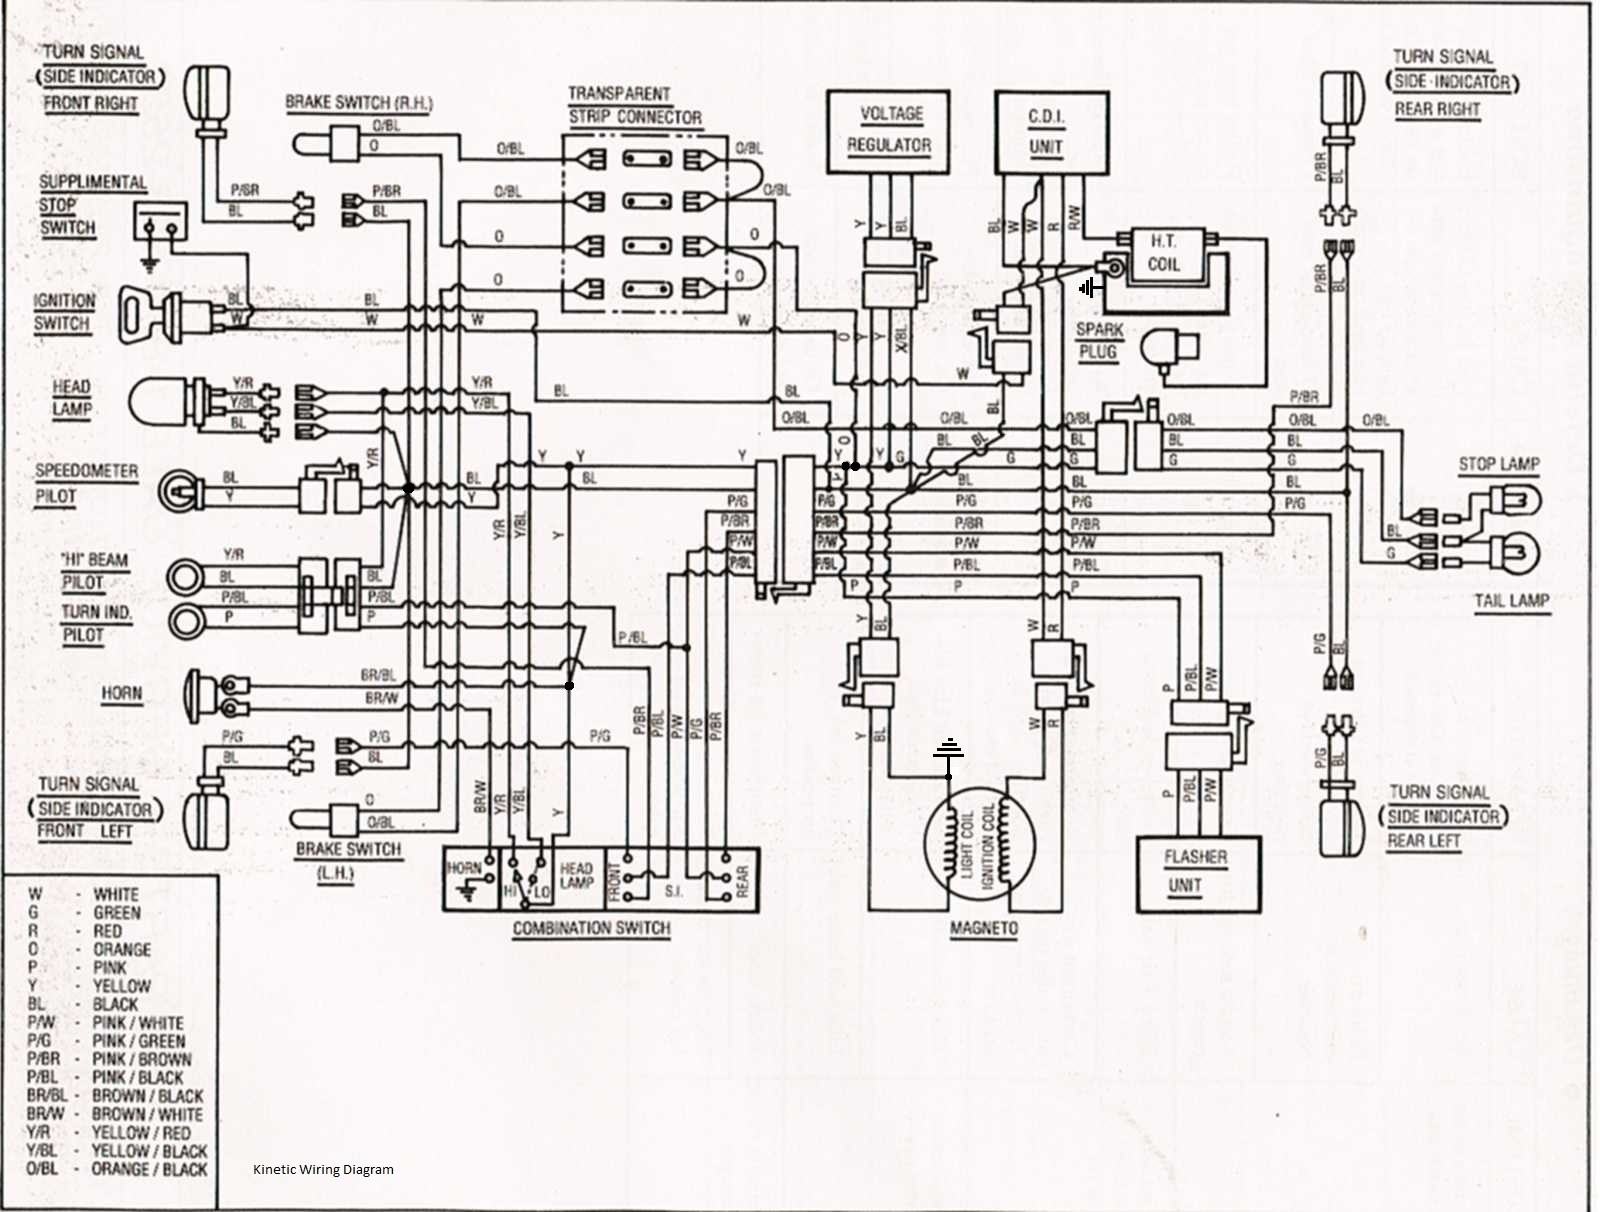 Kinetic wiring diagram.jpg